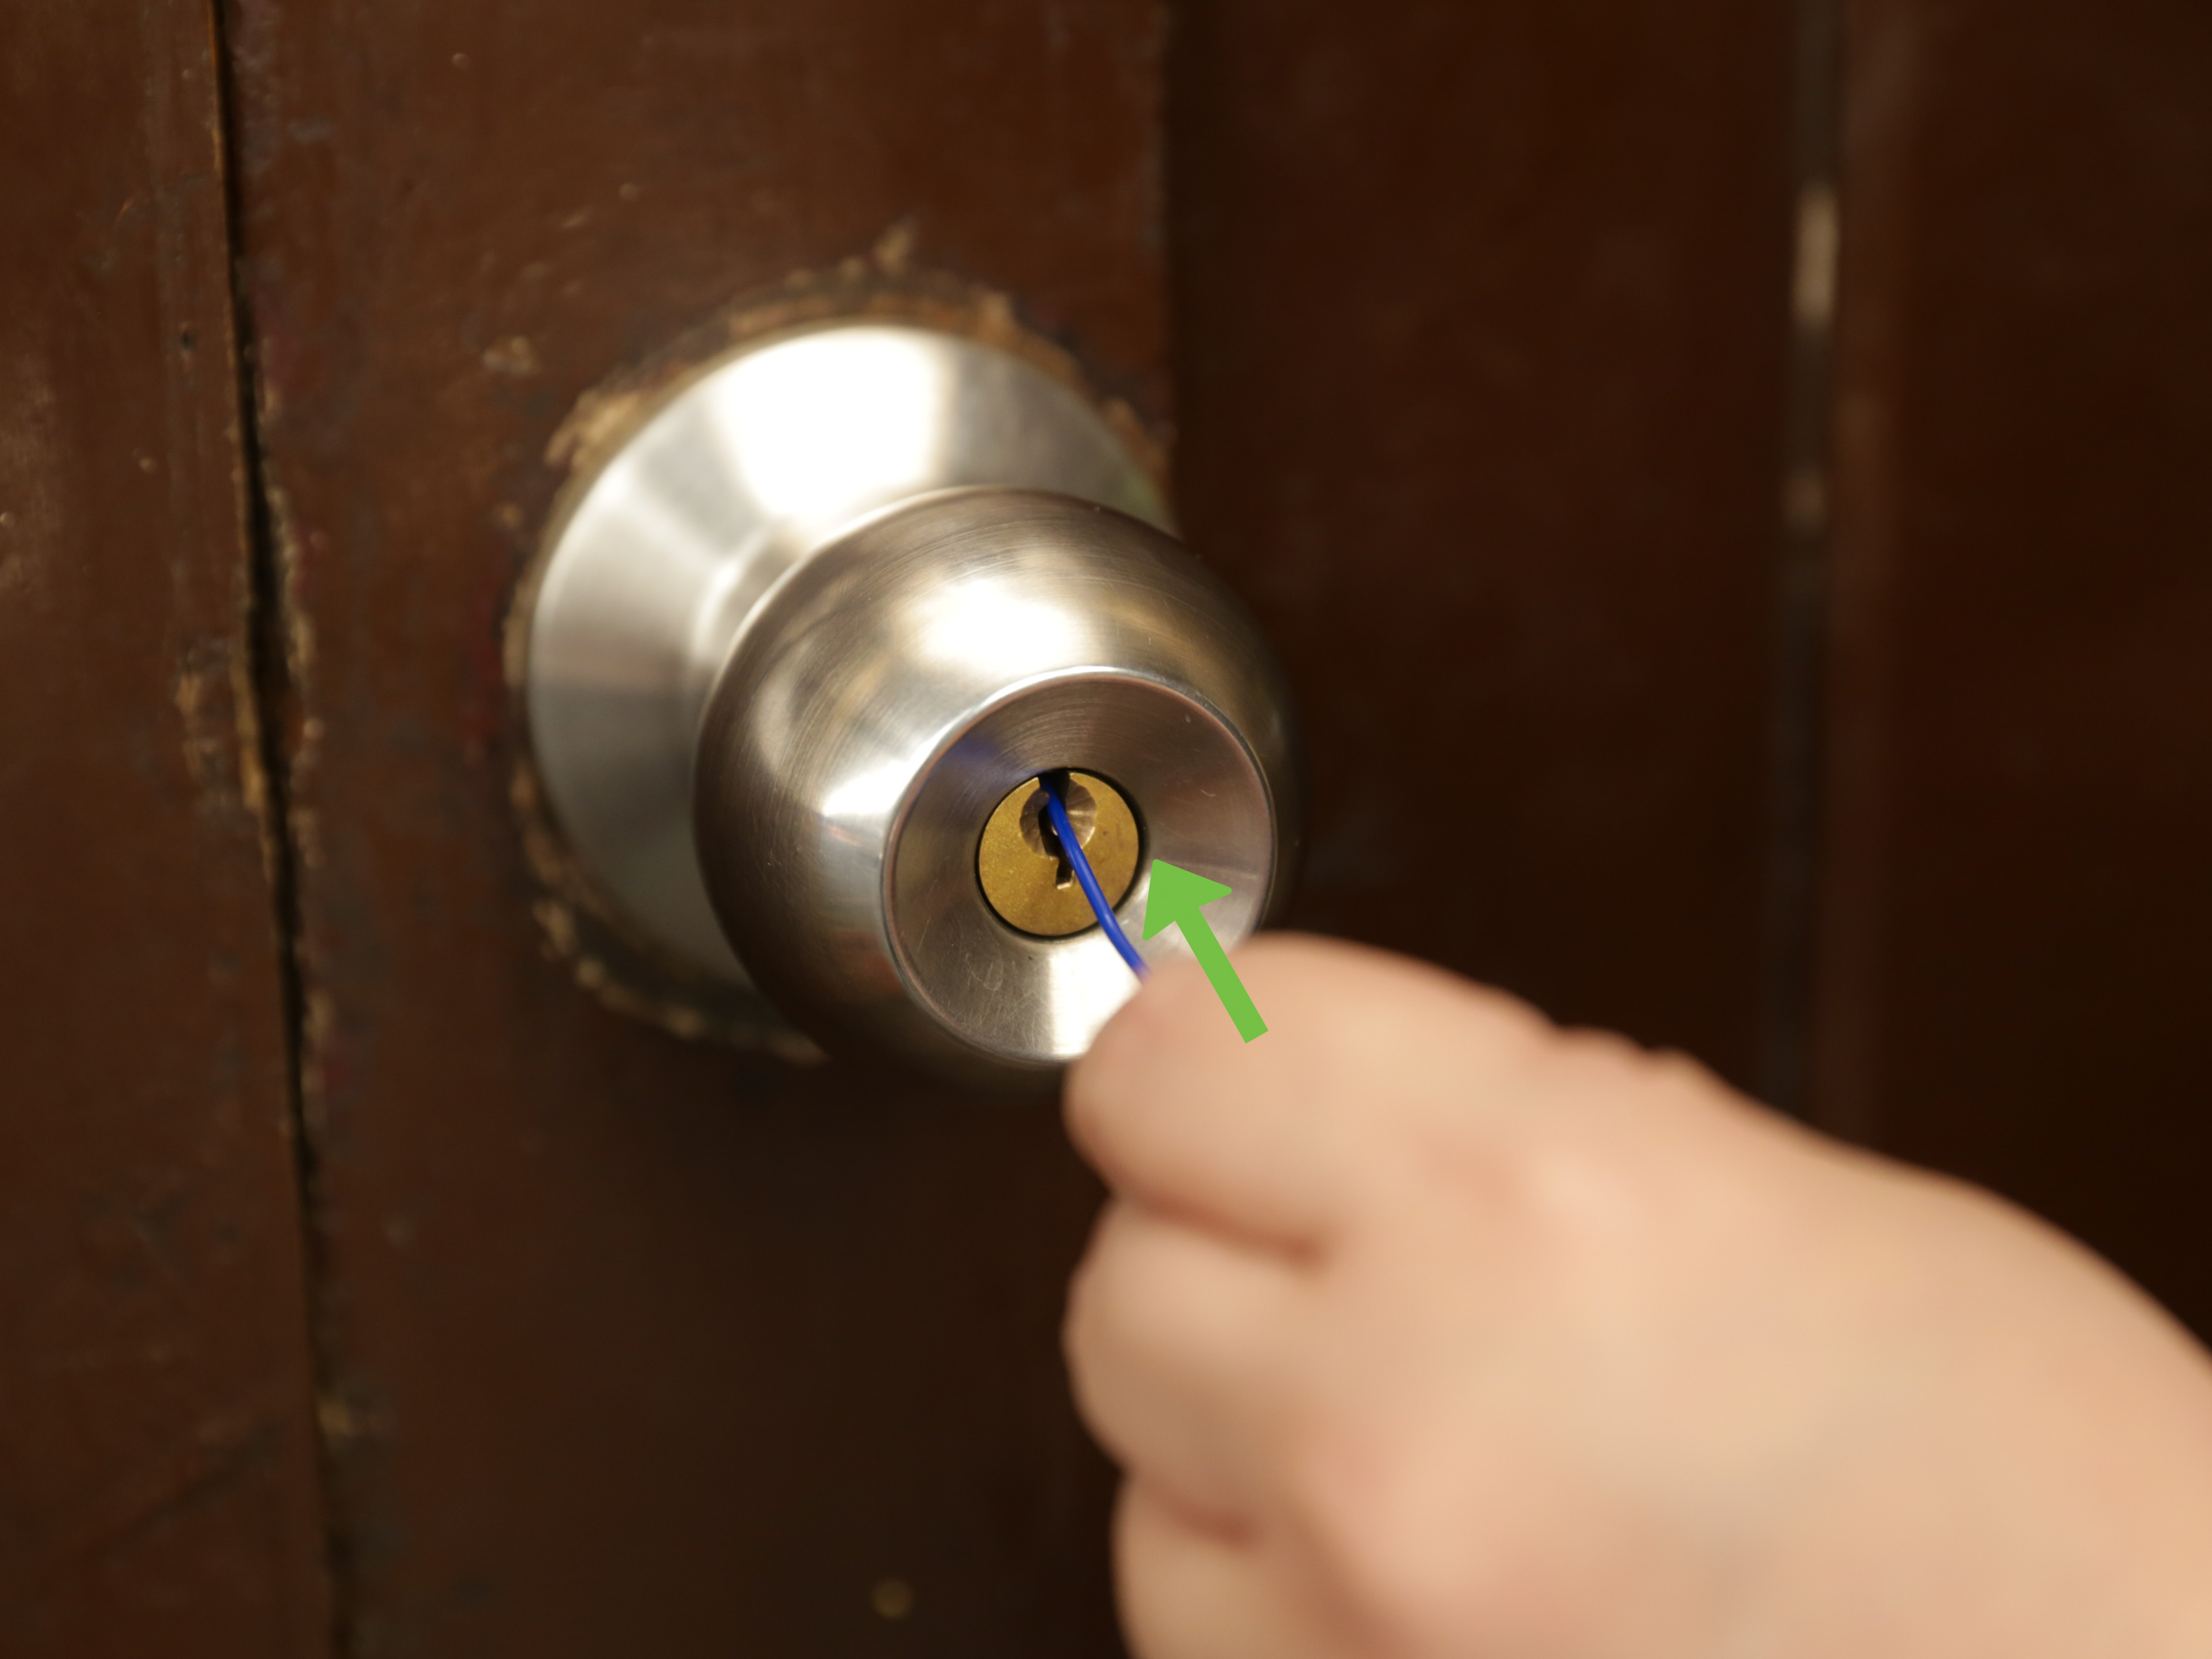 3 ways to pick locks on doorknobs - wikihow